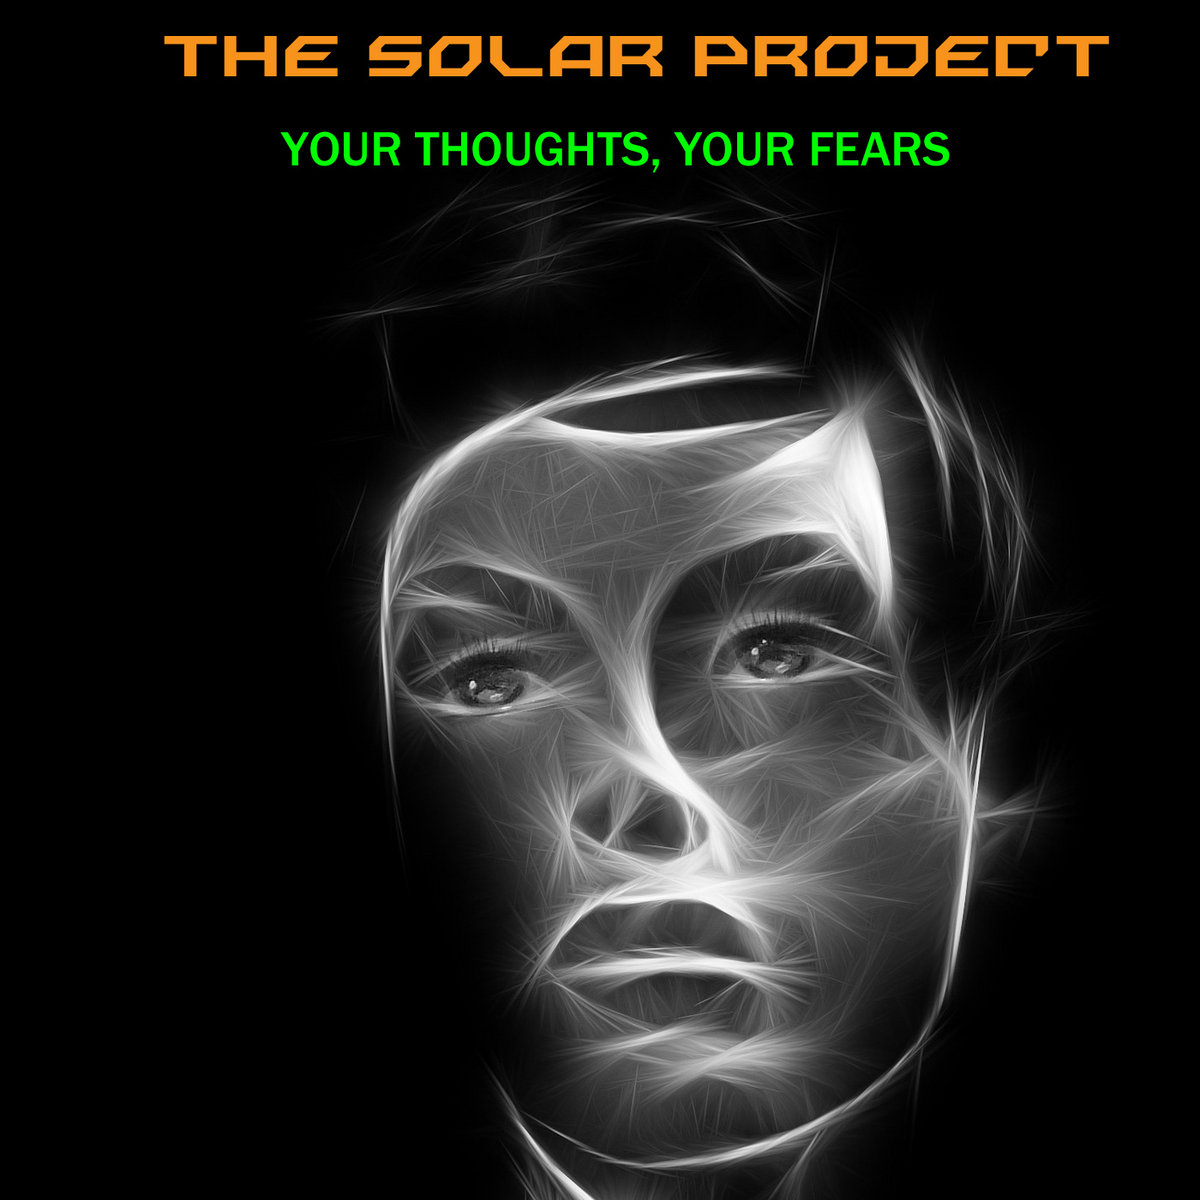 Your Thoughts, Your Fears by The Solar Project